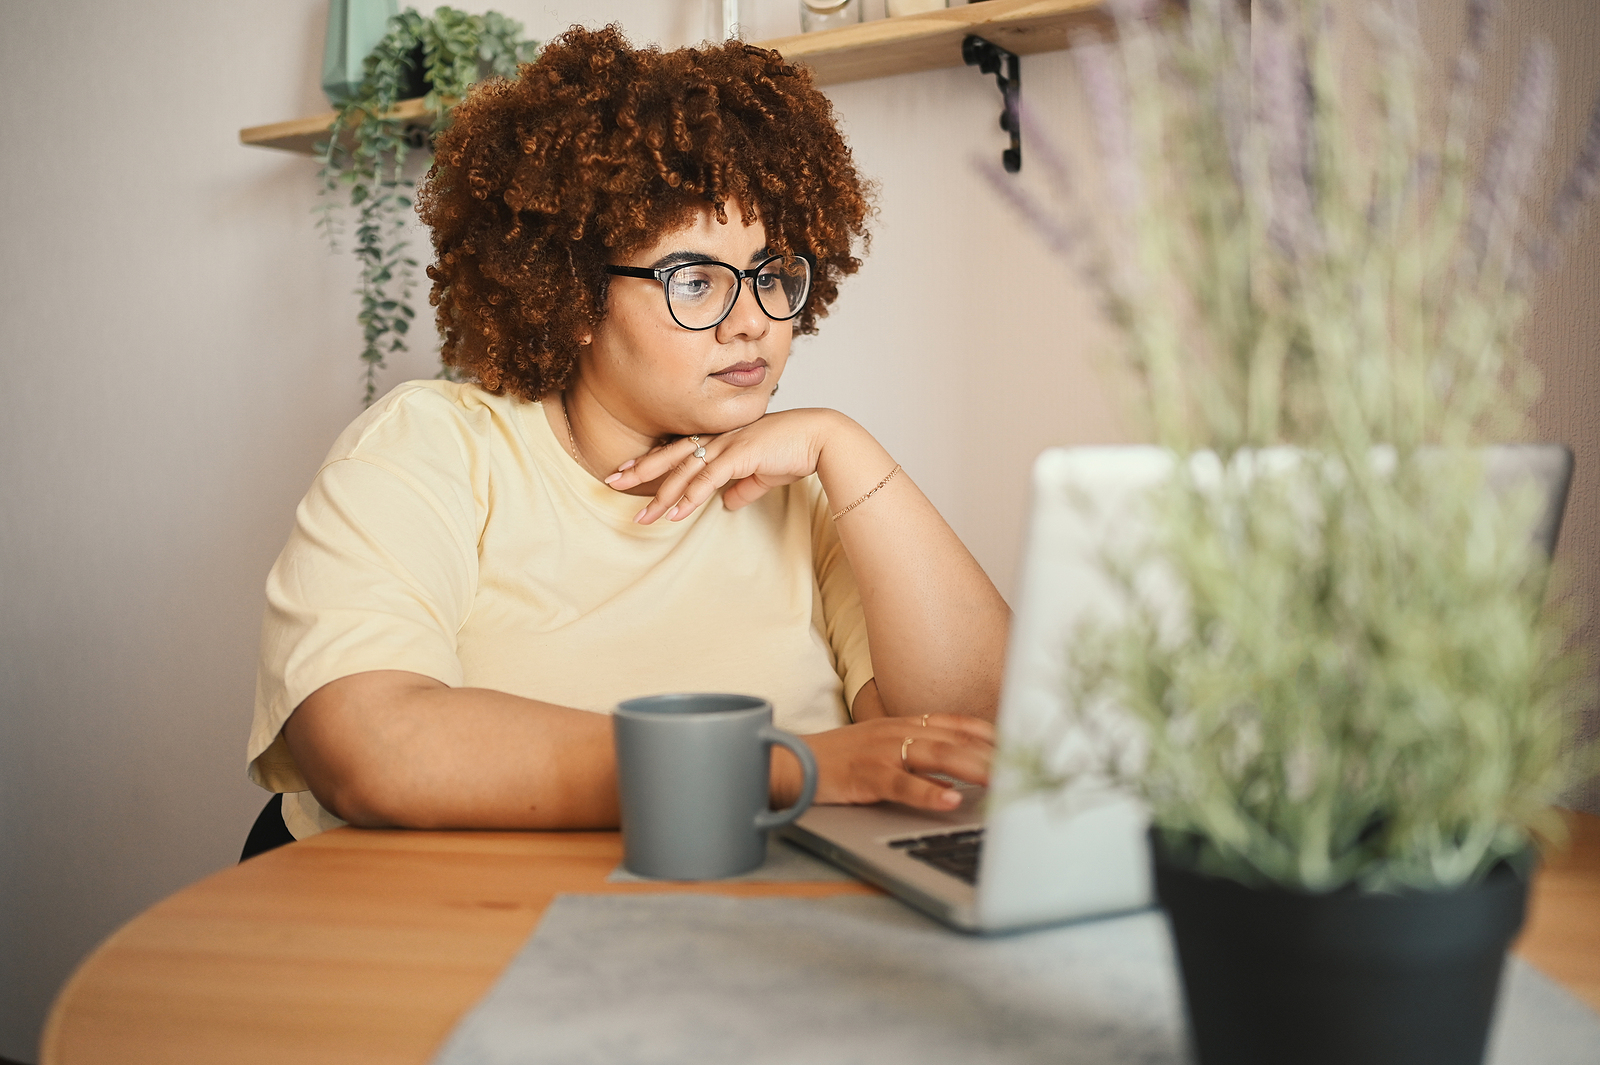 Woman on laptop with plants around her and a cup of coffee or tea. Find codependency treatment in Miramar, FL for healthy boundaries with online therapy in Florida.